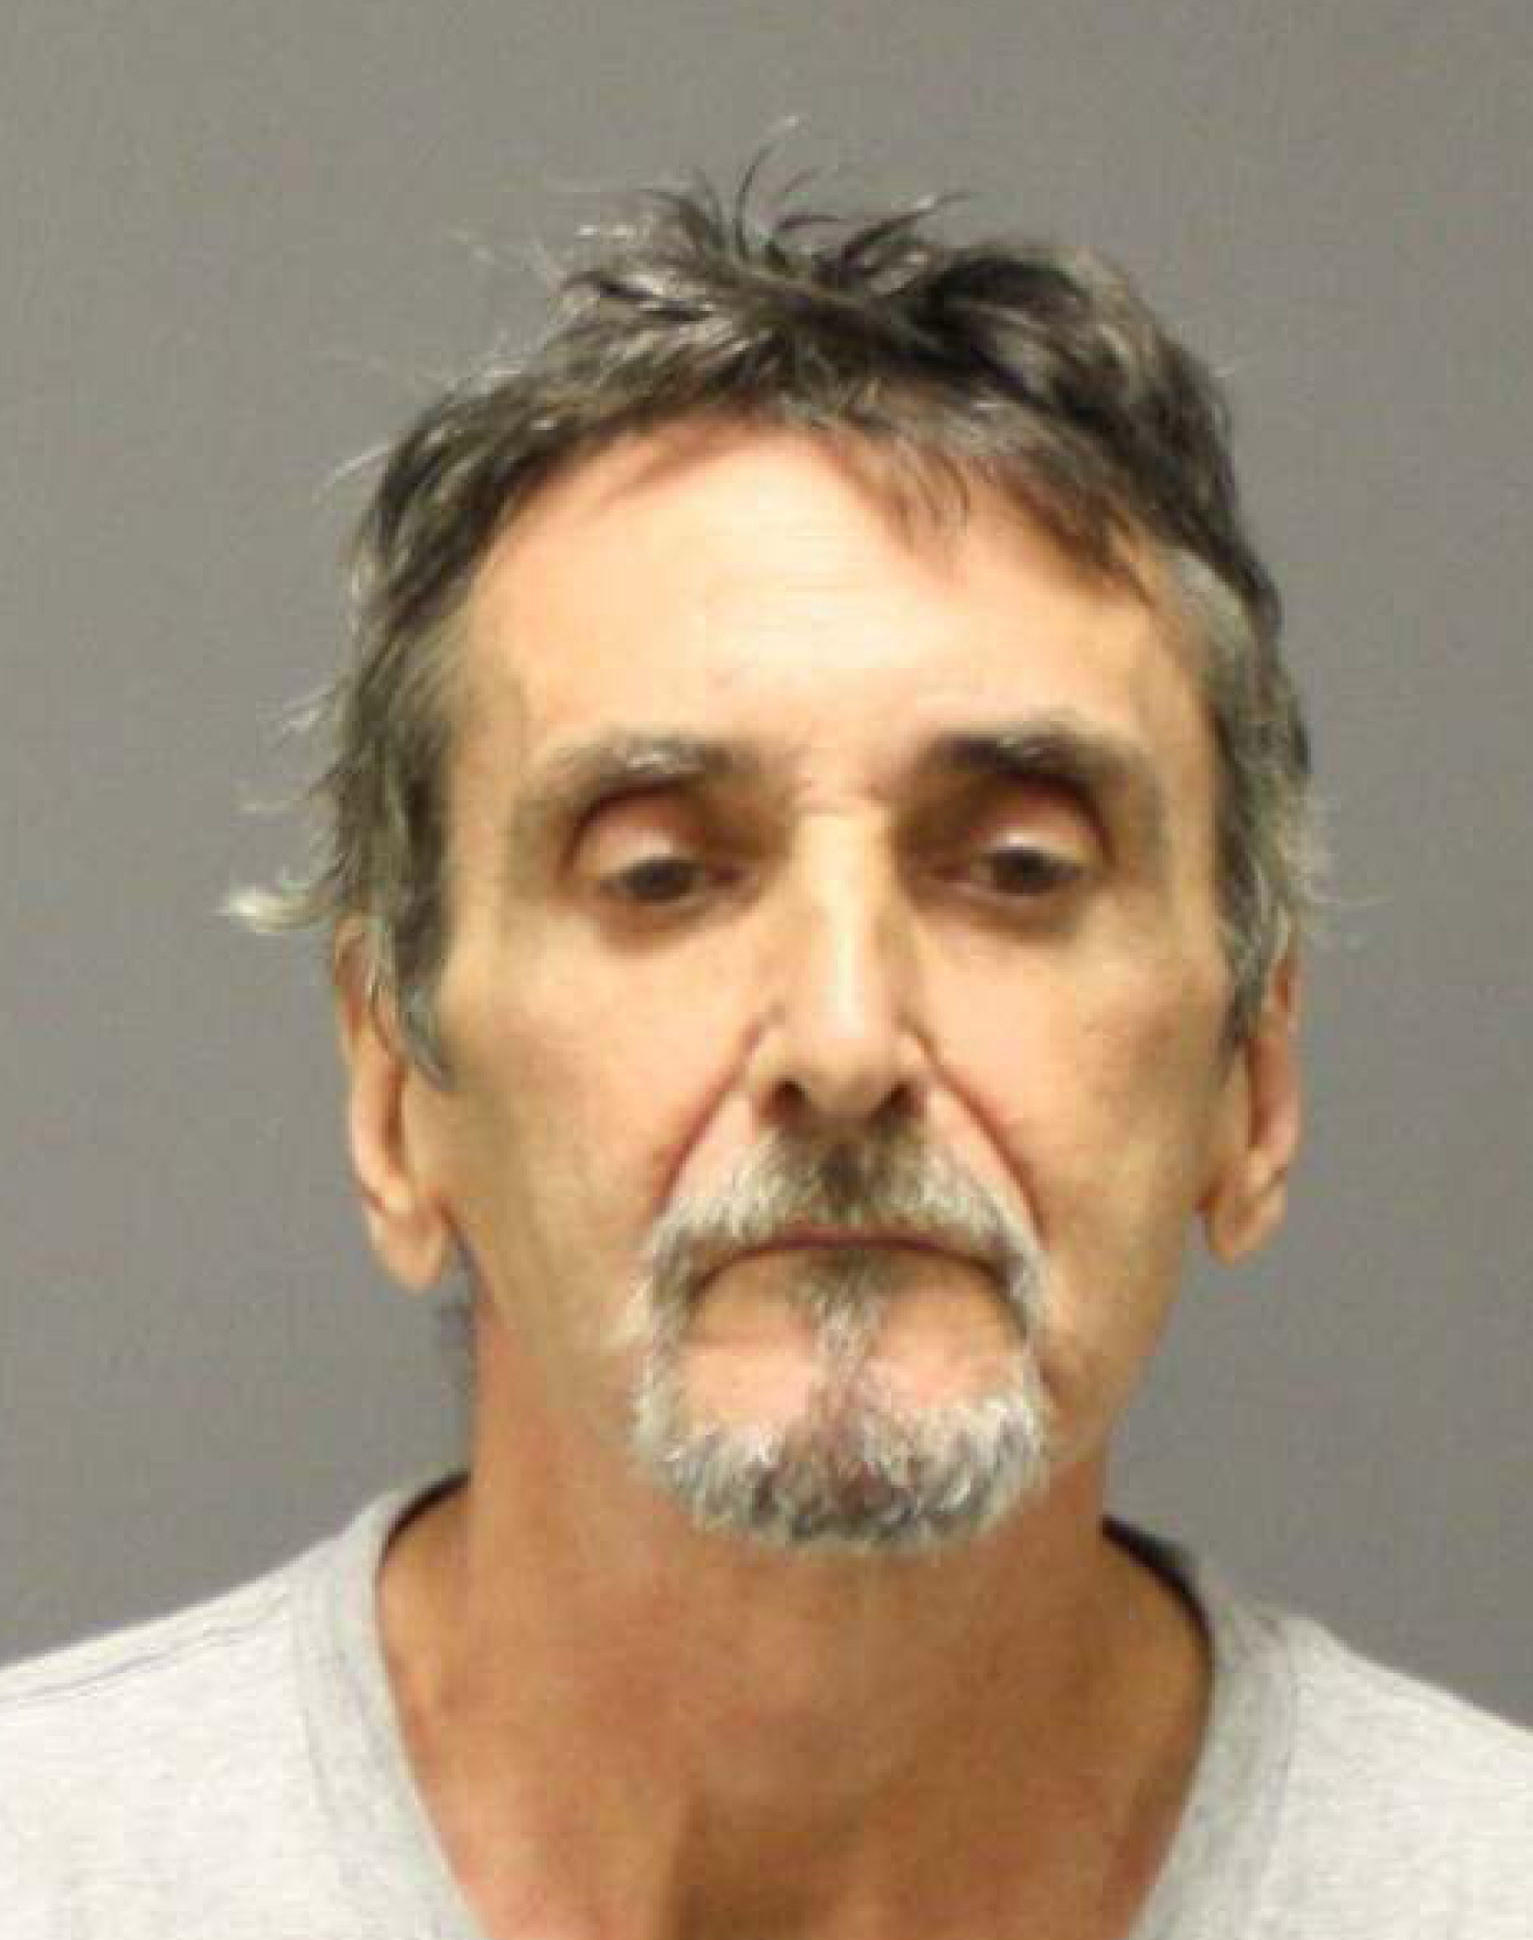 George Michael Kline, 58, was arrested and third-degree burglary, attempted third-degree burglary, attempted sixth-degree larceny, interfering with an officer and drug offenses.